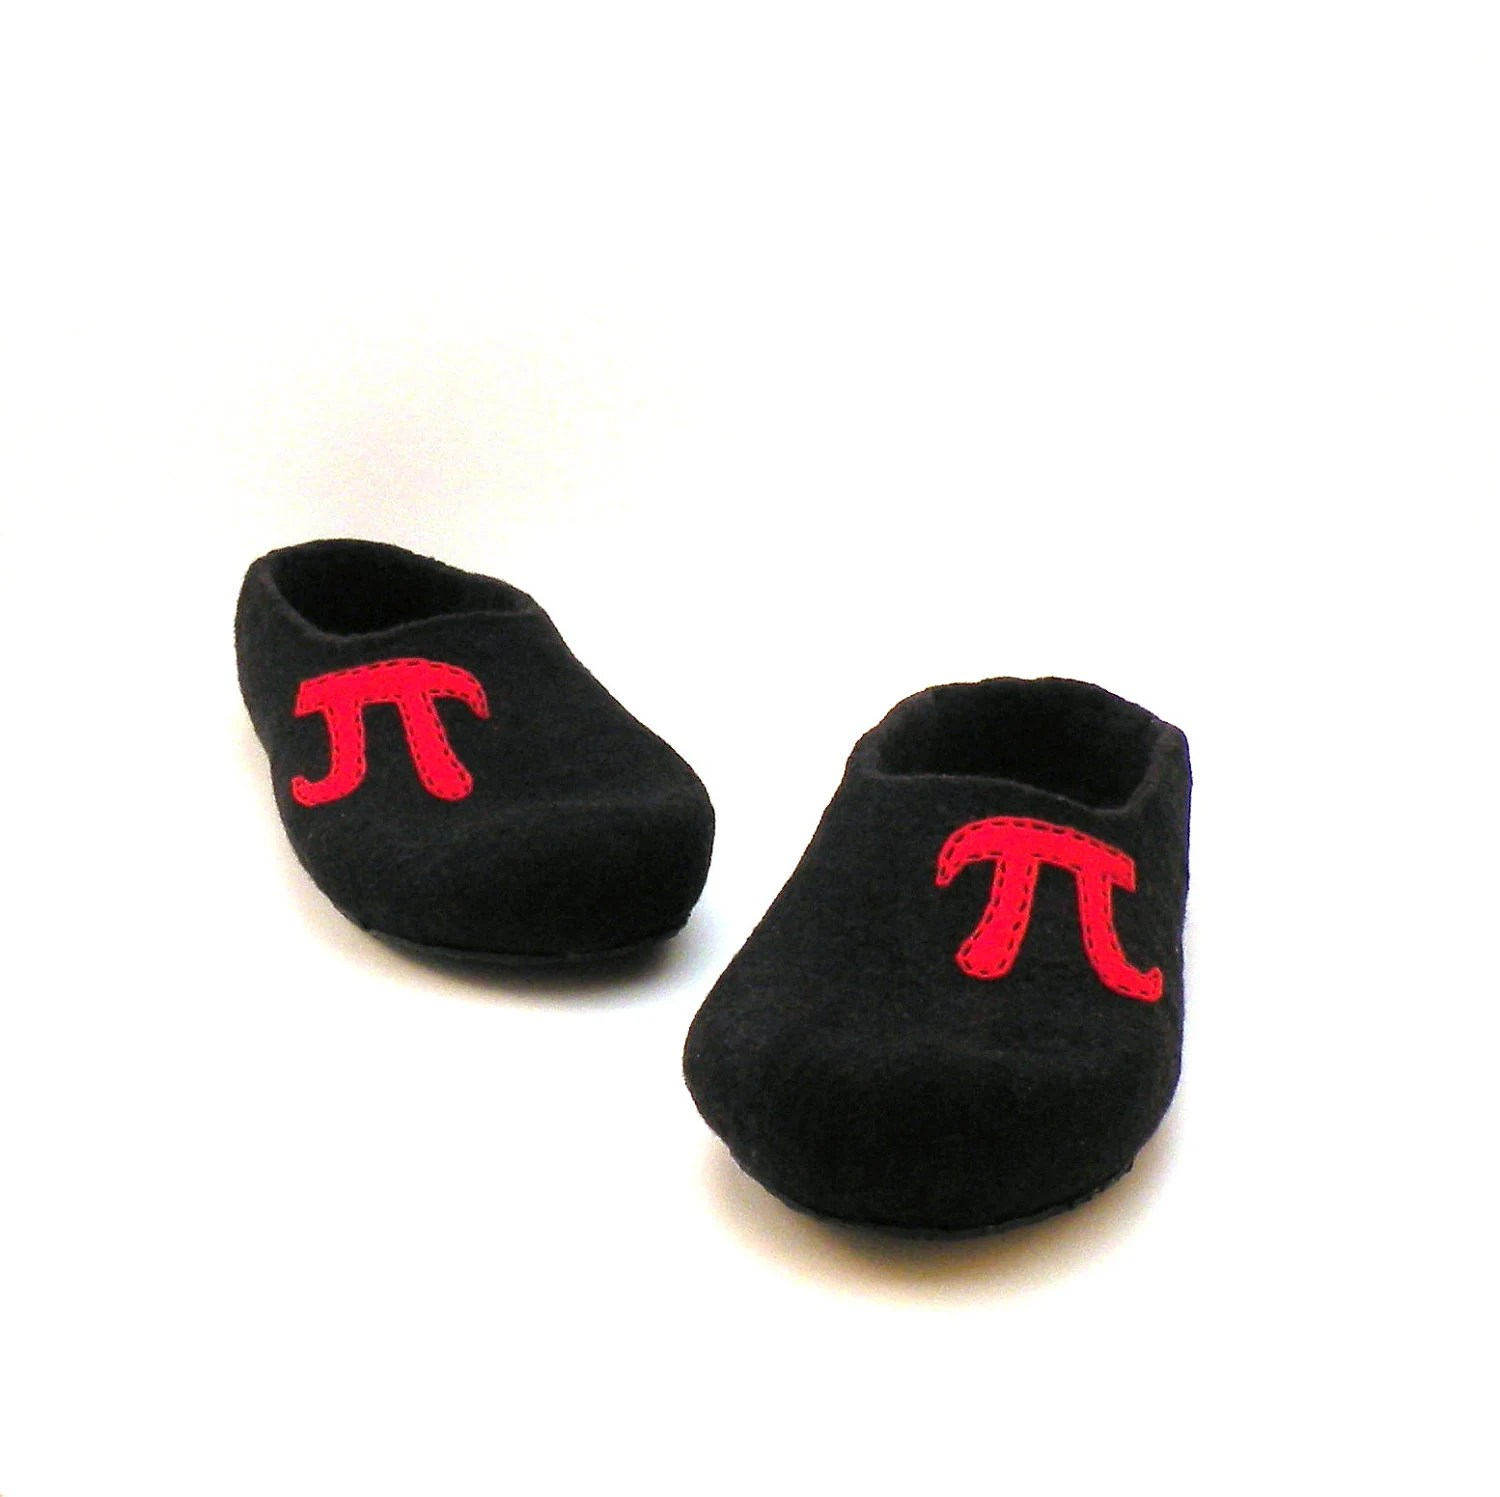 Felted wool monogrammed slippers for men - black red - made to order - with initial - men house shoes - personalized gifts - AgnesFelt